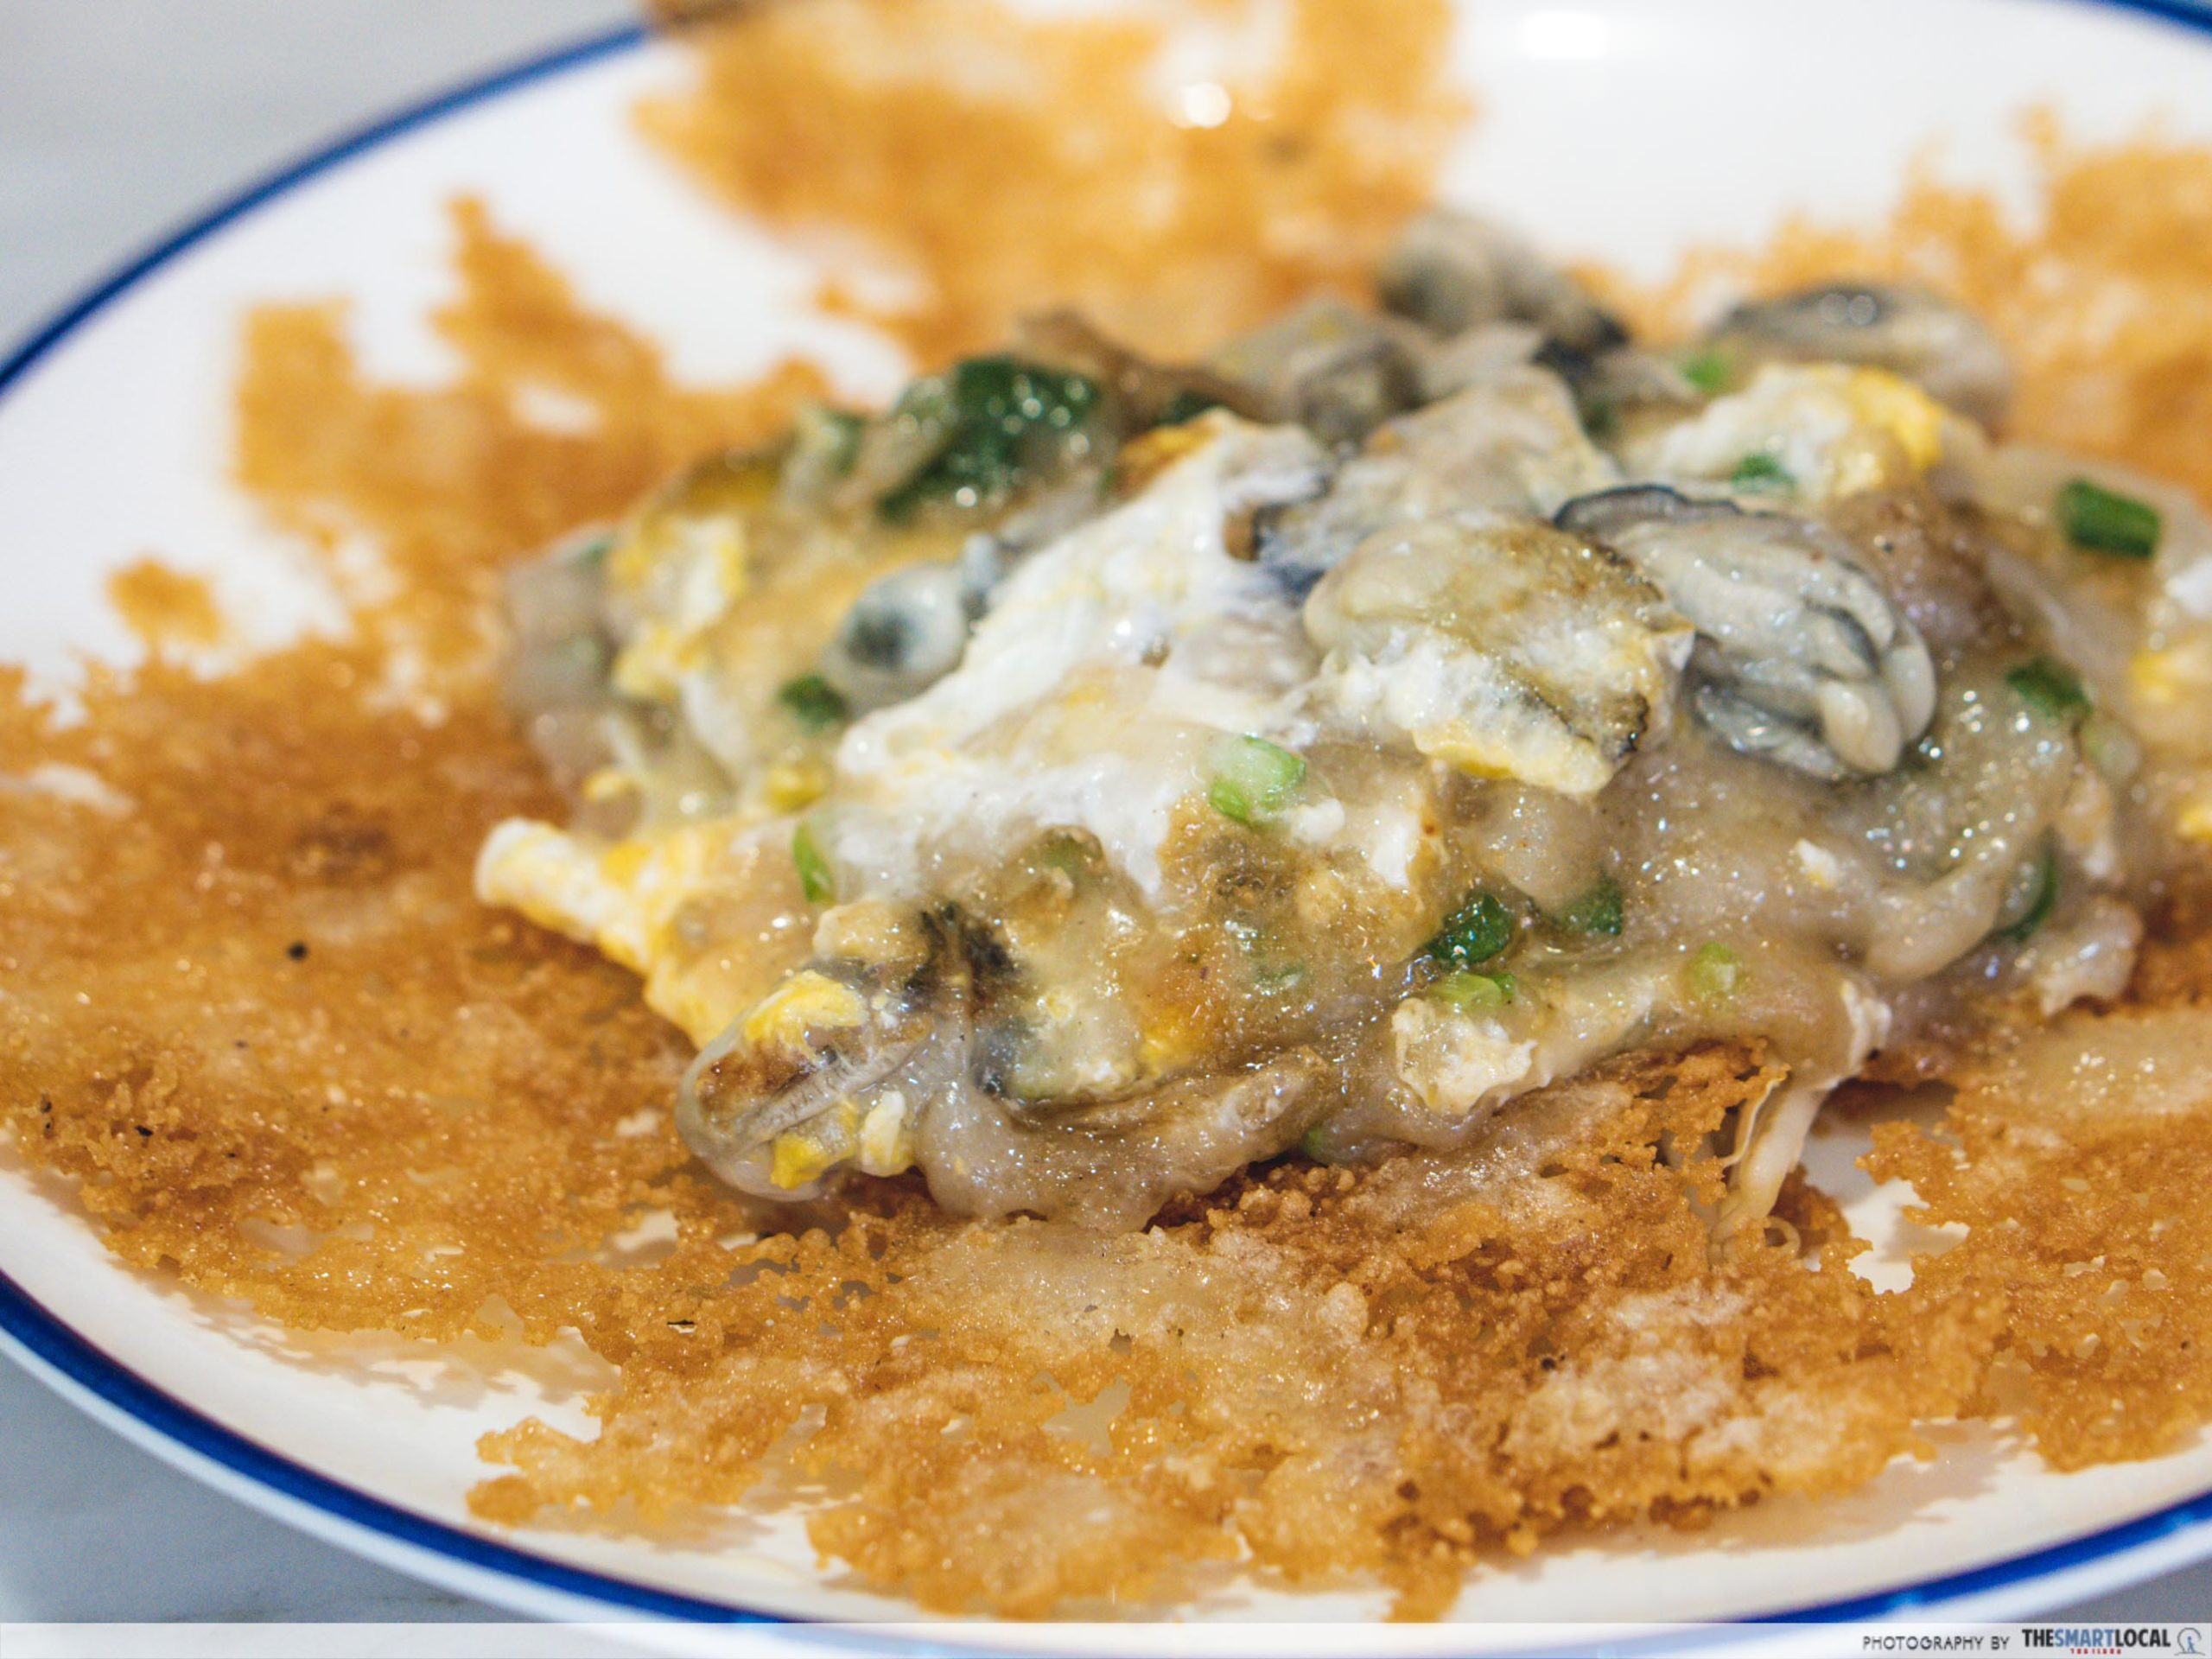 oyster-pancakes-Thailand